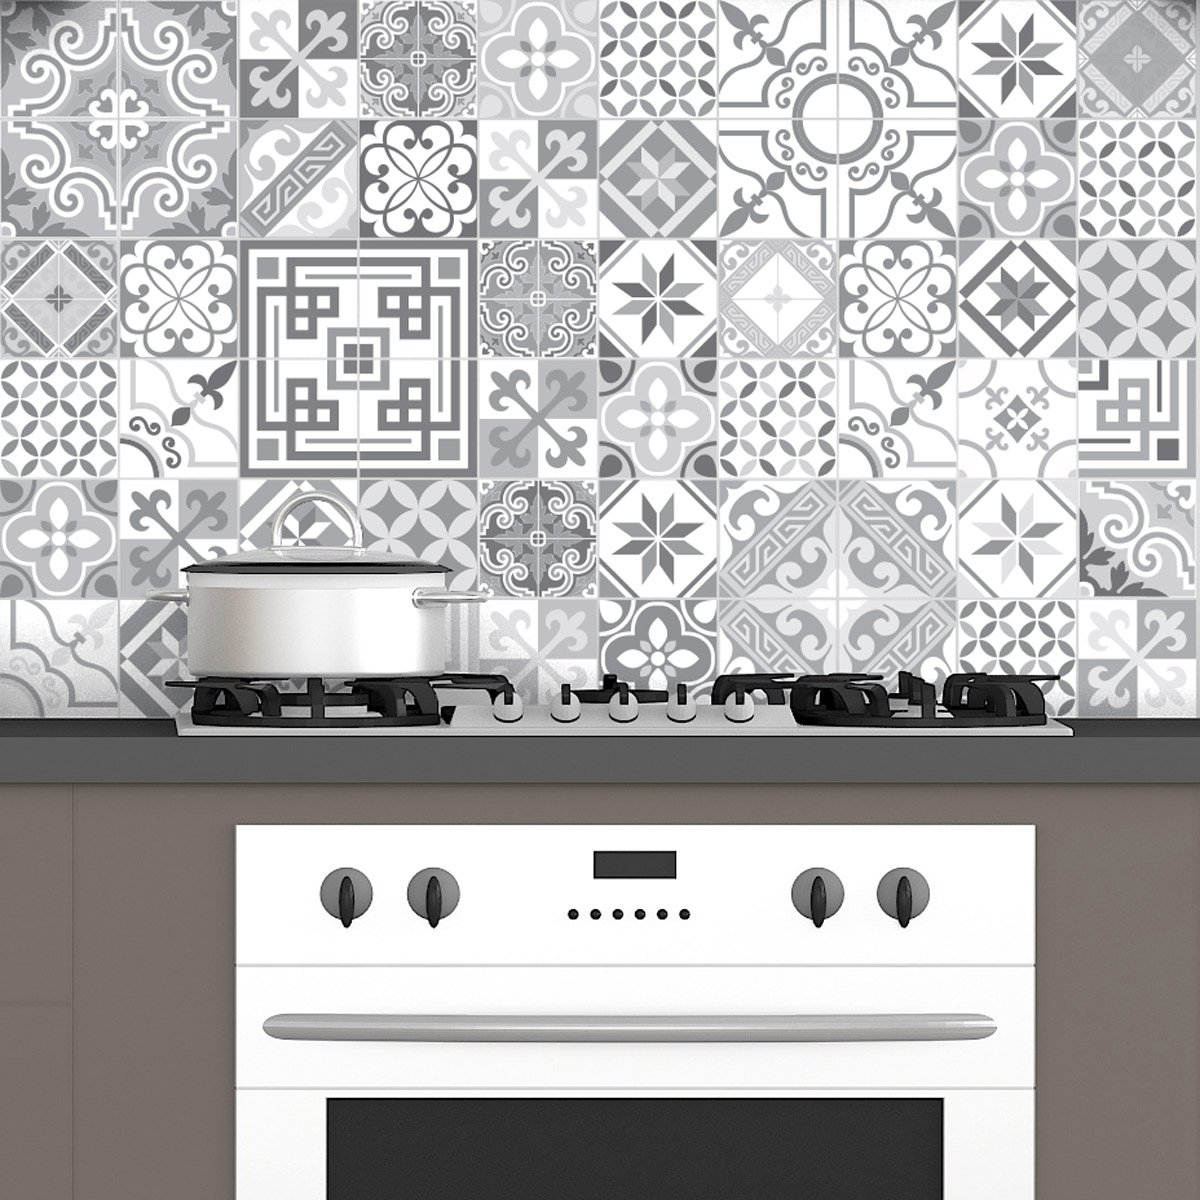 Ambiance 60 x Adhesive Cement Effect Wall Tiles, Azulejos Design, 15 x 15 cm 15x 15 cm